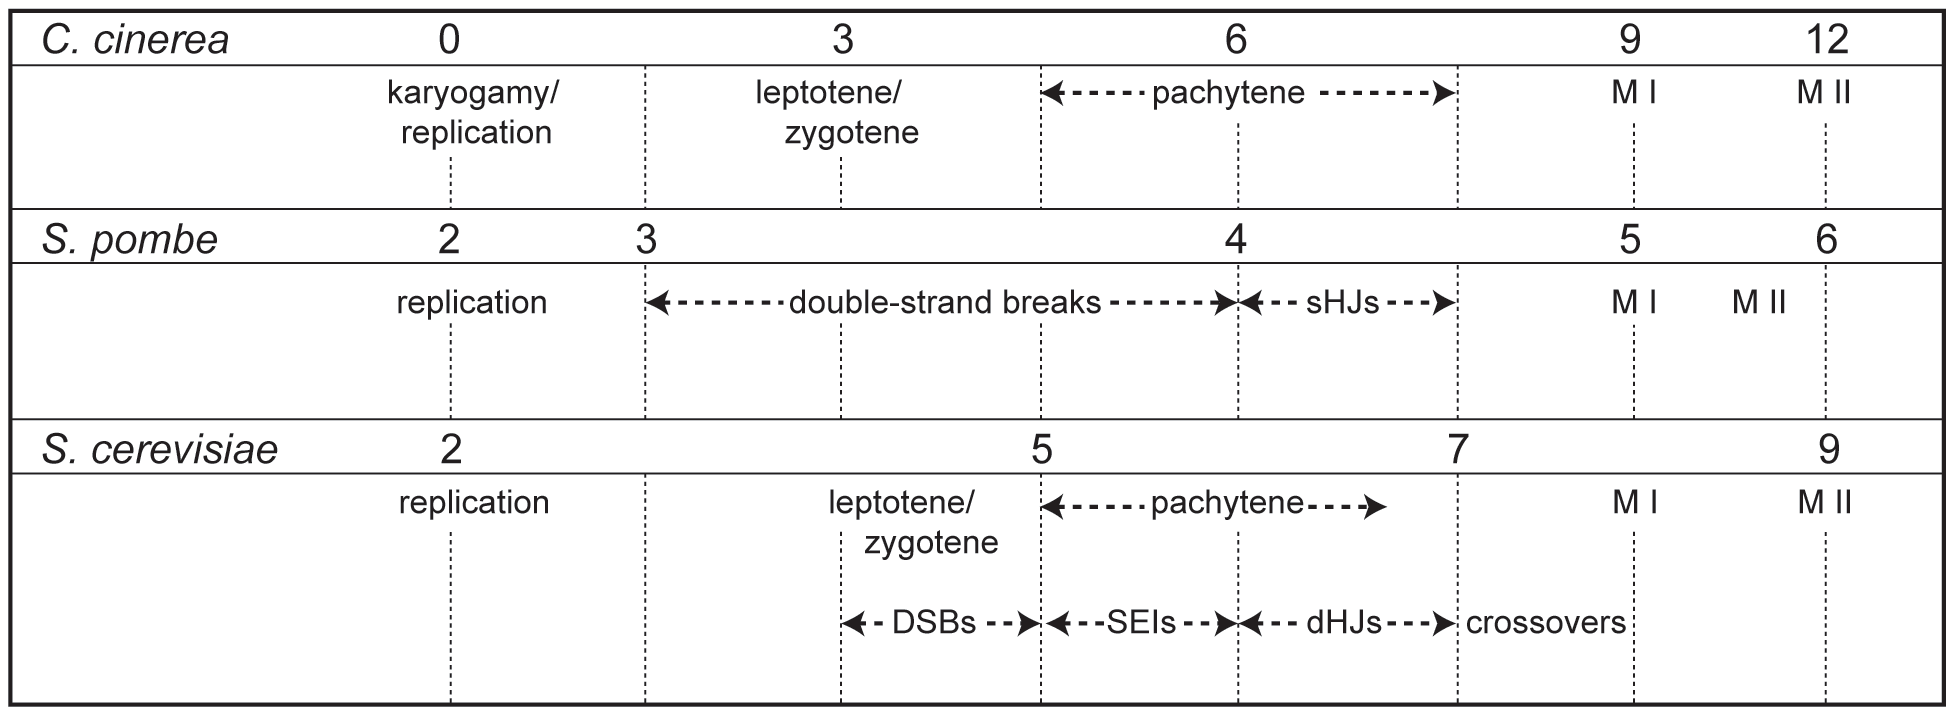 Timing of meiotic events in <i>C. cinerea</i>, <i>S. pombe</i>, and <i>S. cerevisiae</i>.